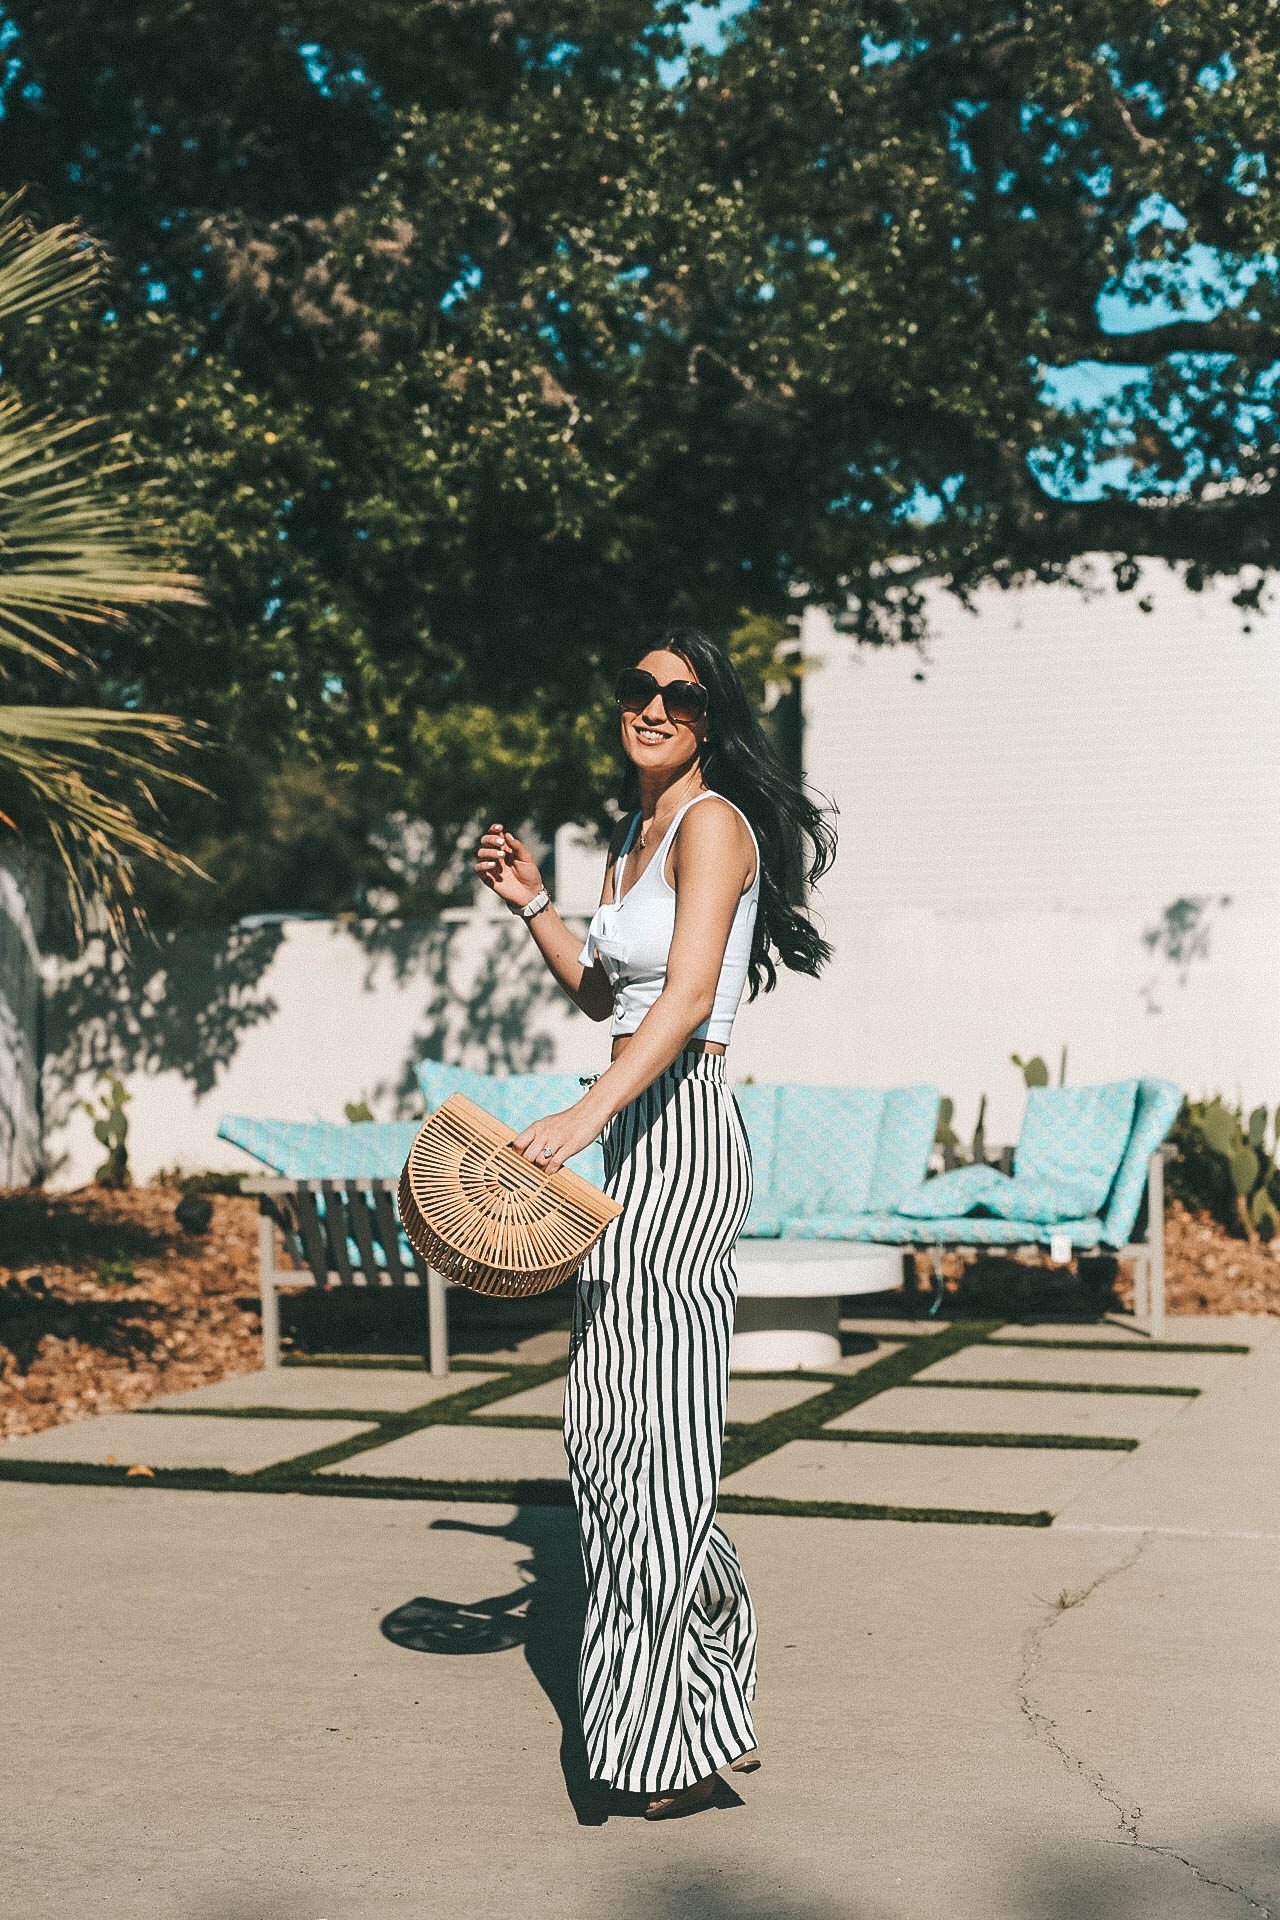 How to Style Striped Wide Leg Pants for Summer   summer pants   striped pants outfit   summer outfit ideas    Dressed to Kill #style #fashion #womensoutfits #stripedpants #summerstyle